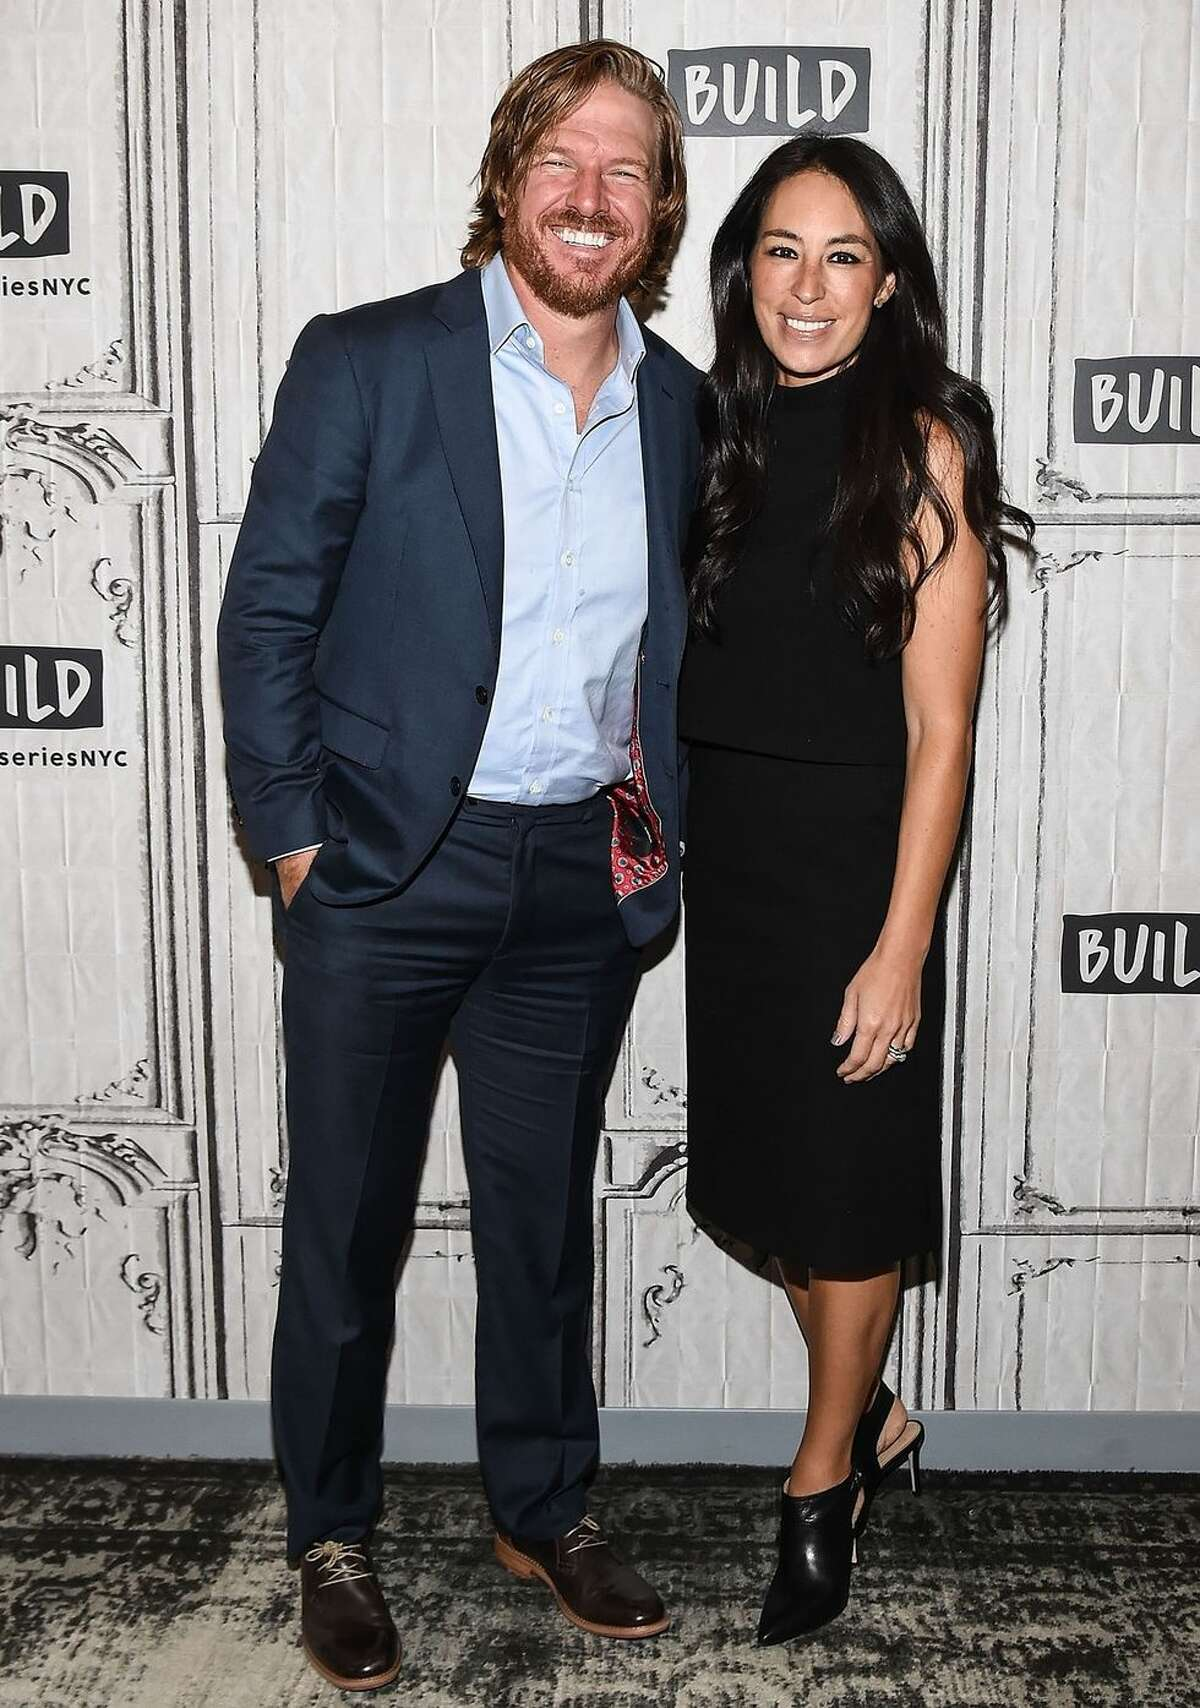 Chip and Joanna Gaines are looking to fill over 20 positions at their Magnolia Market, meaning you could be paid to just hand out there (and work, obviously). >> See facts you should know about Magnolia Market.